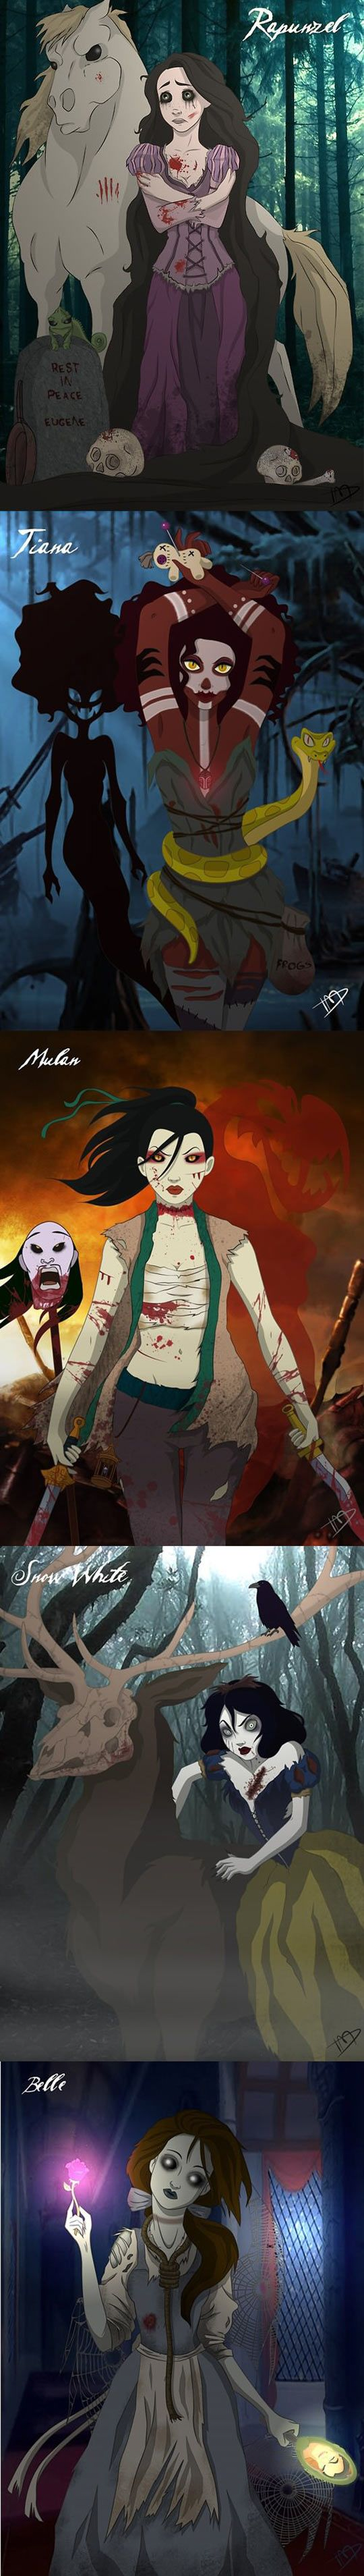 Scary Zombie Disney Princesses // funny pictures - funny photos - funny images - funny pics - funny quotes - #lol #humor #funnypictures